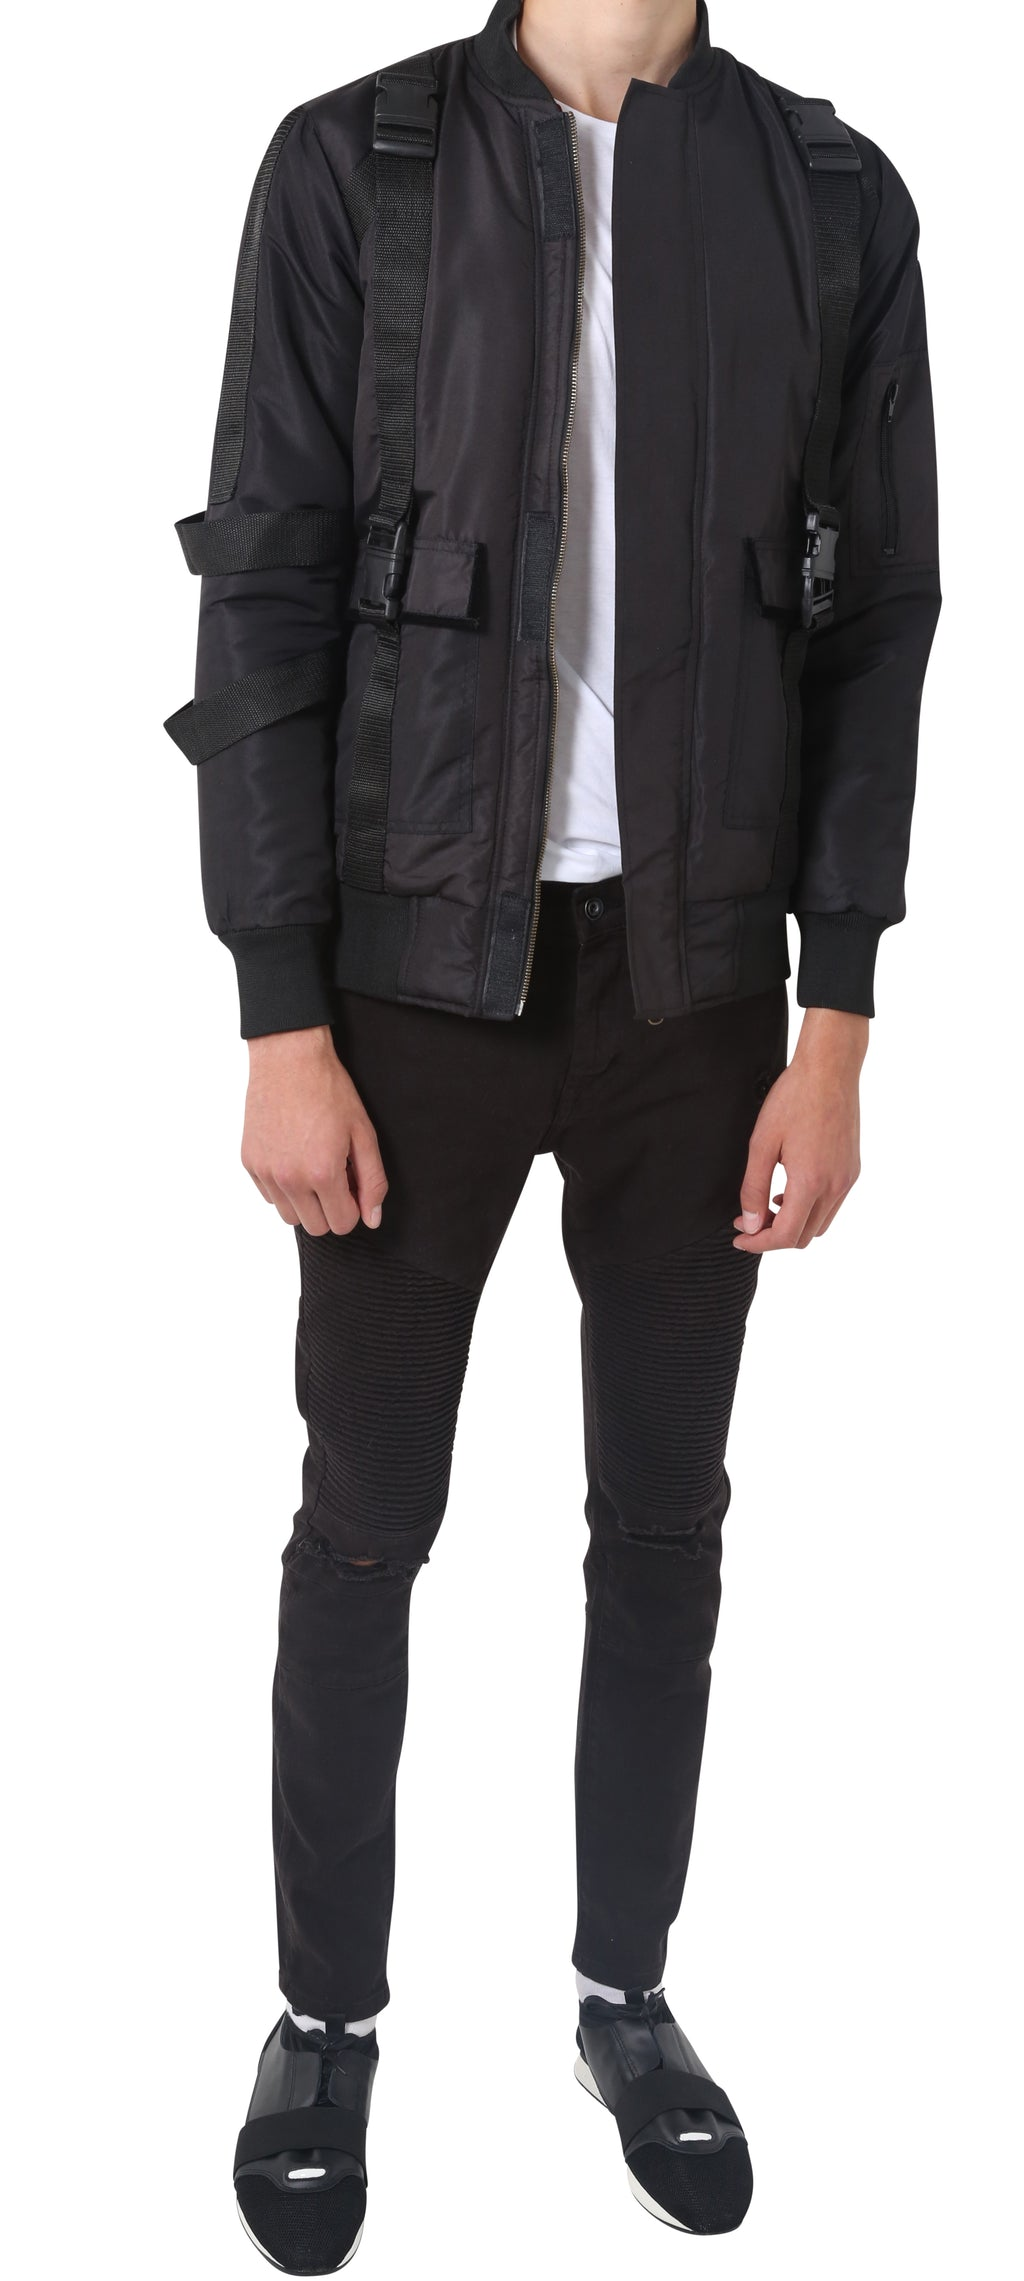 Black Military Bomber Jacket - Reversible